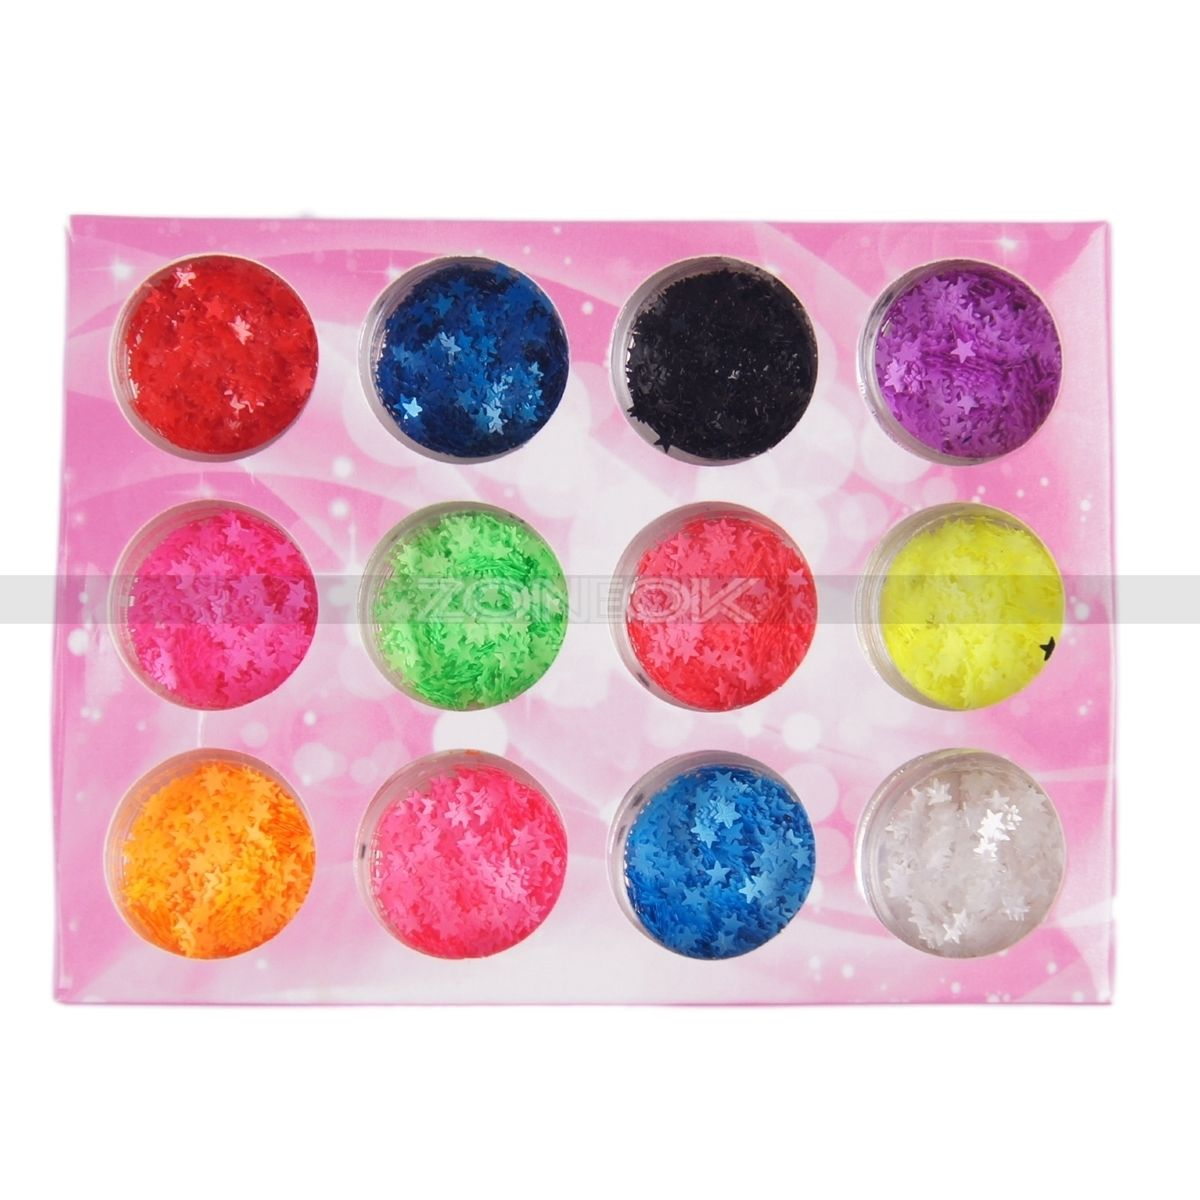 12 Colors Star Bling Glitter Sequin Studs 2mm Tool Manicure Nail Art Tips Kit 2017 New